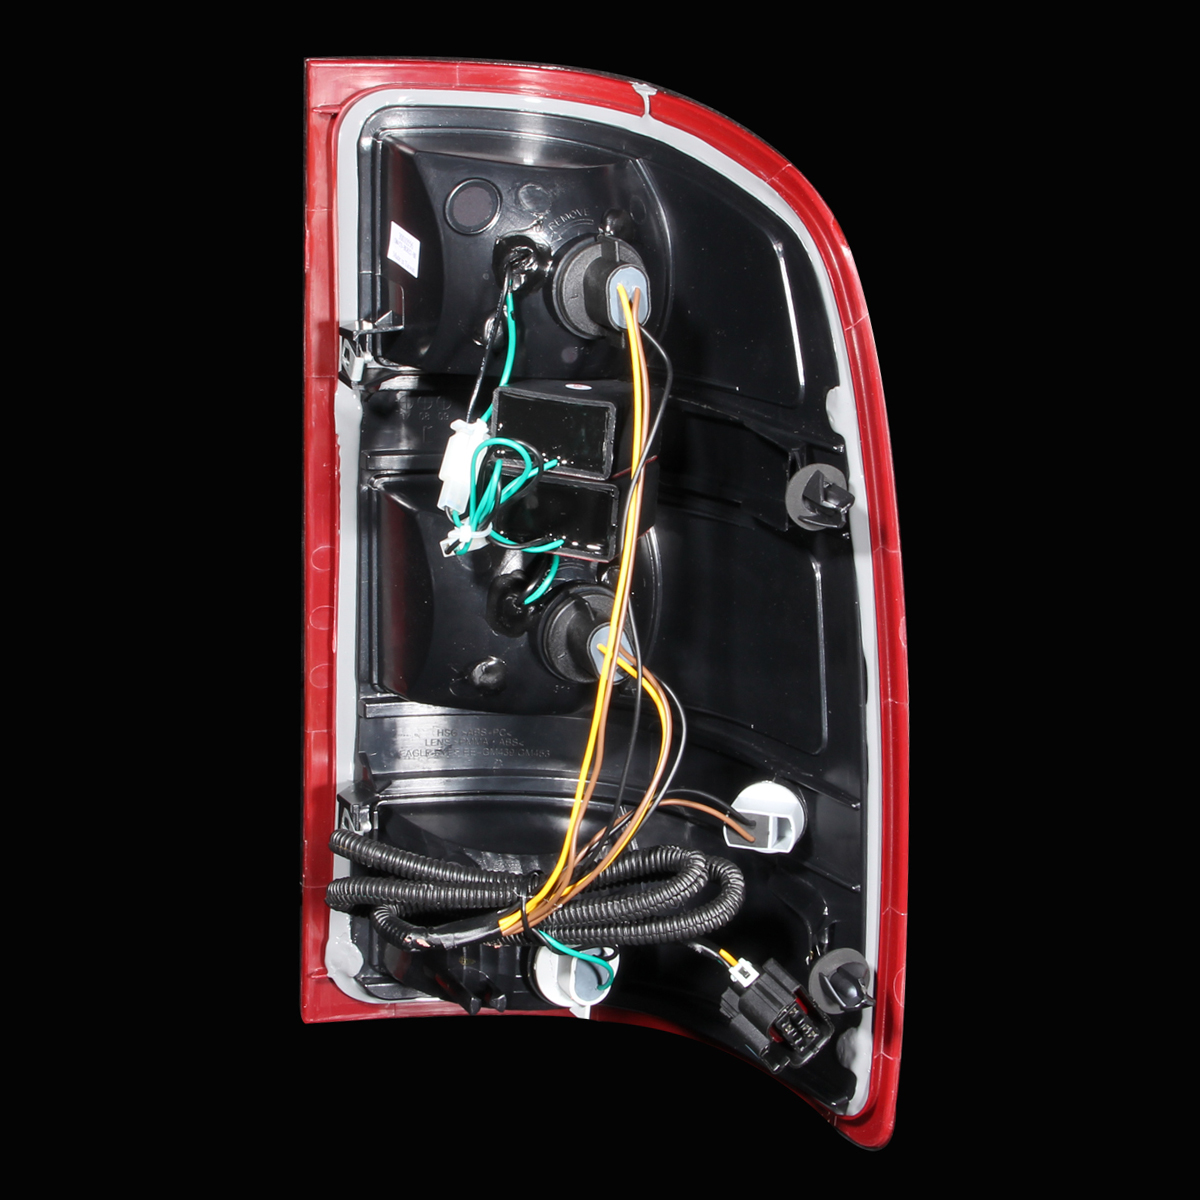 Gmc 2009 2500 Tail Light Wiring Guide And Troubleshooting Of Schematic For 2013 Chevy 2007 2008 2010 2011 2012 Sierra 1500 Diagram Truck